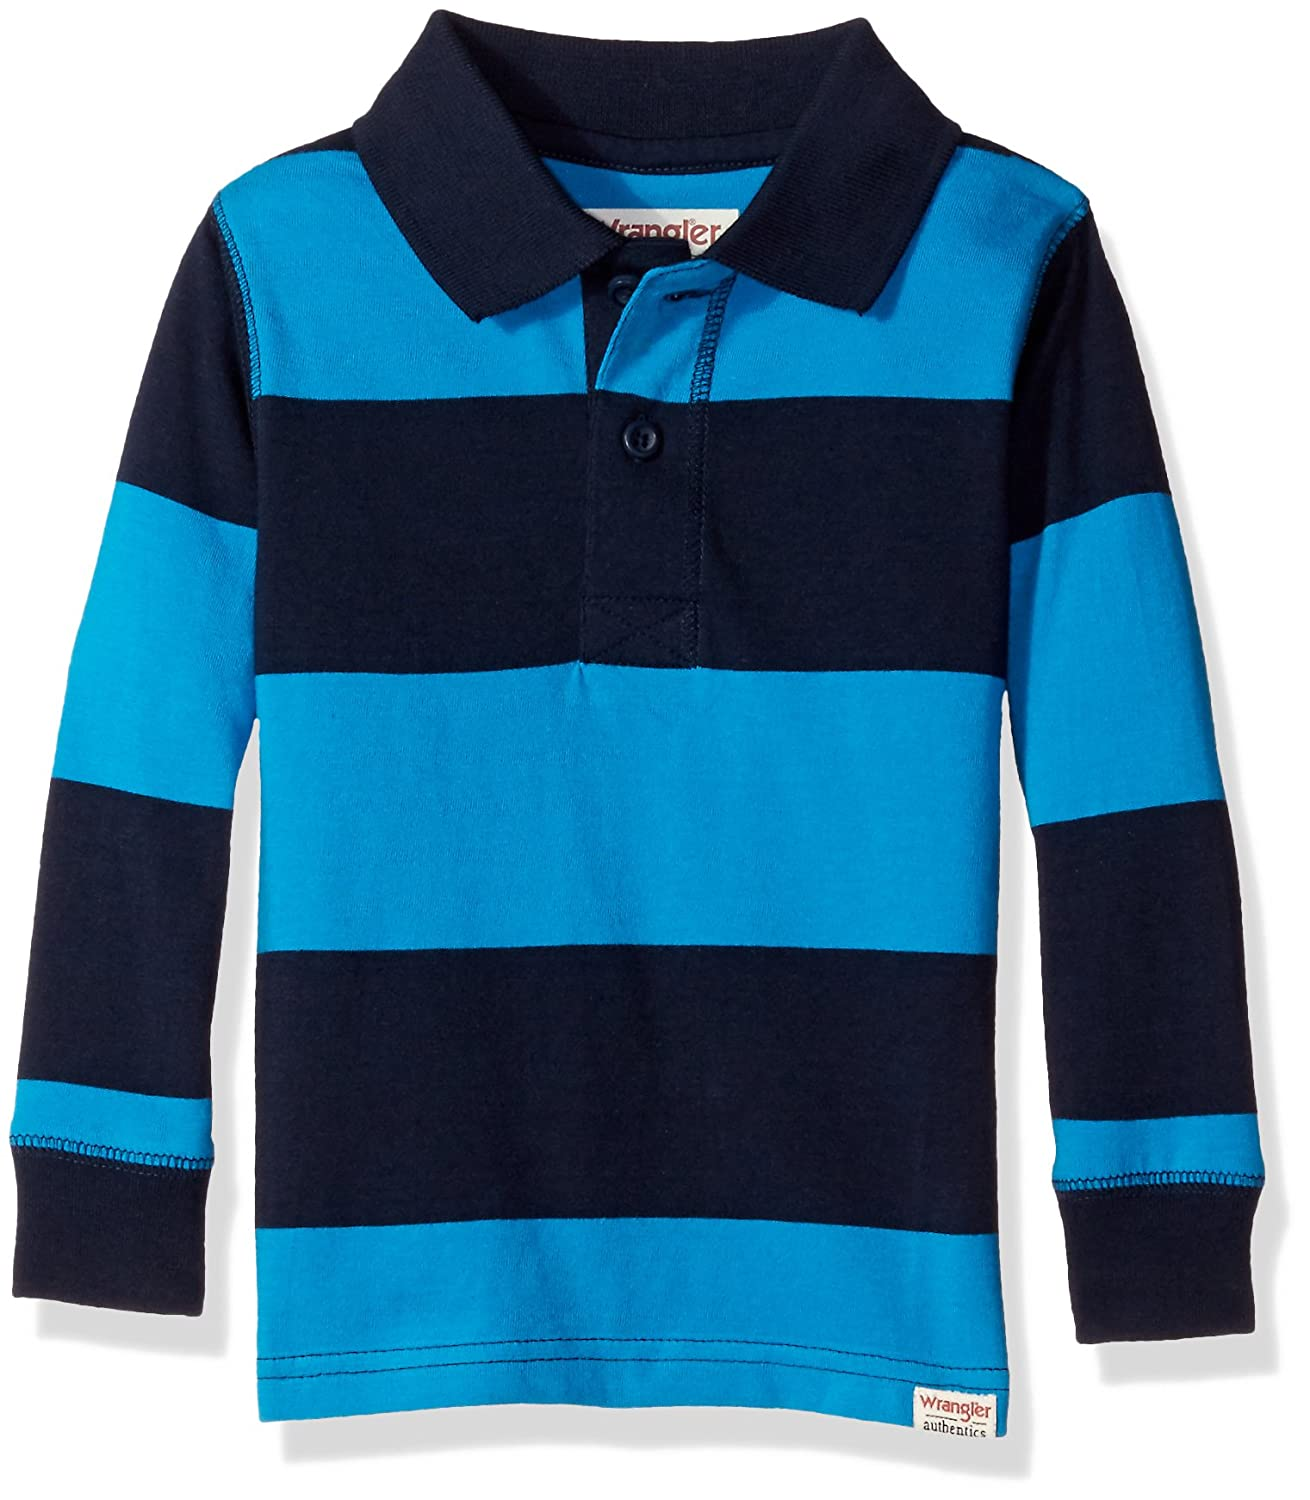 54f72d783268 Top15: Wrangler Authentics Infant & Toddler Baby Boys' Long Sleeve Knit Polo